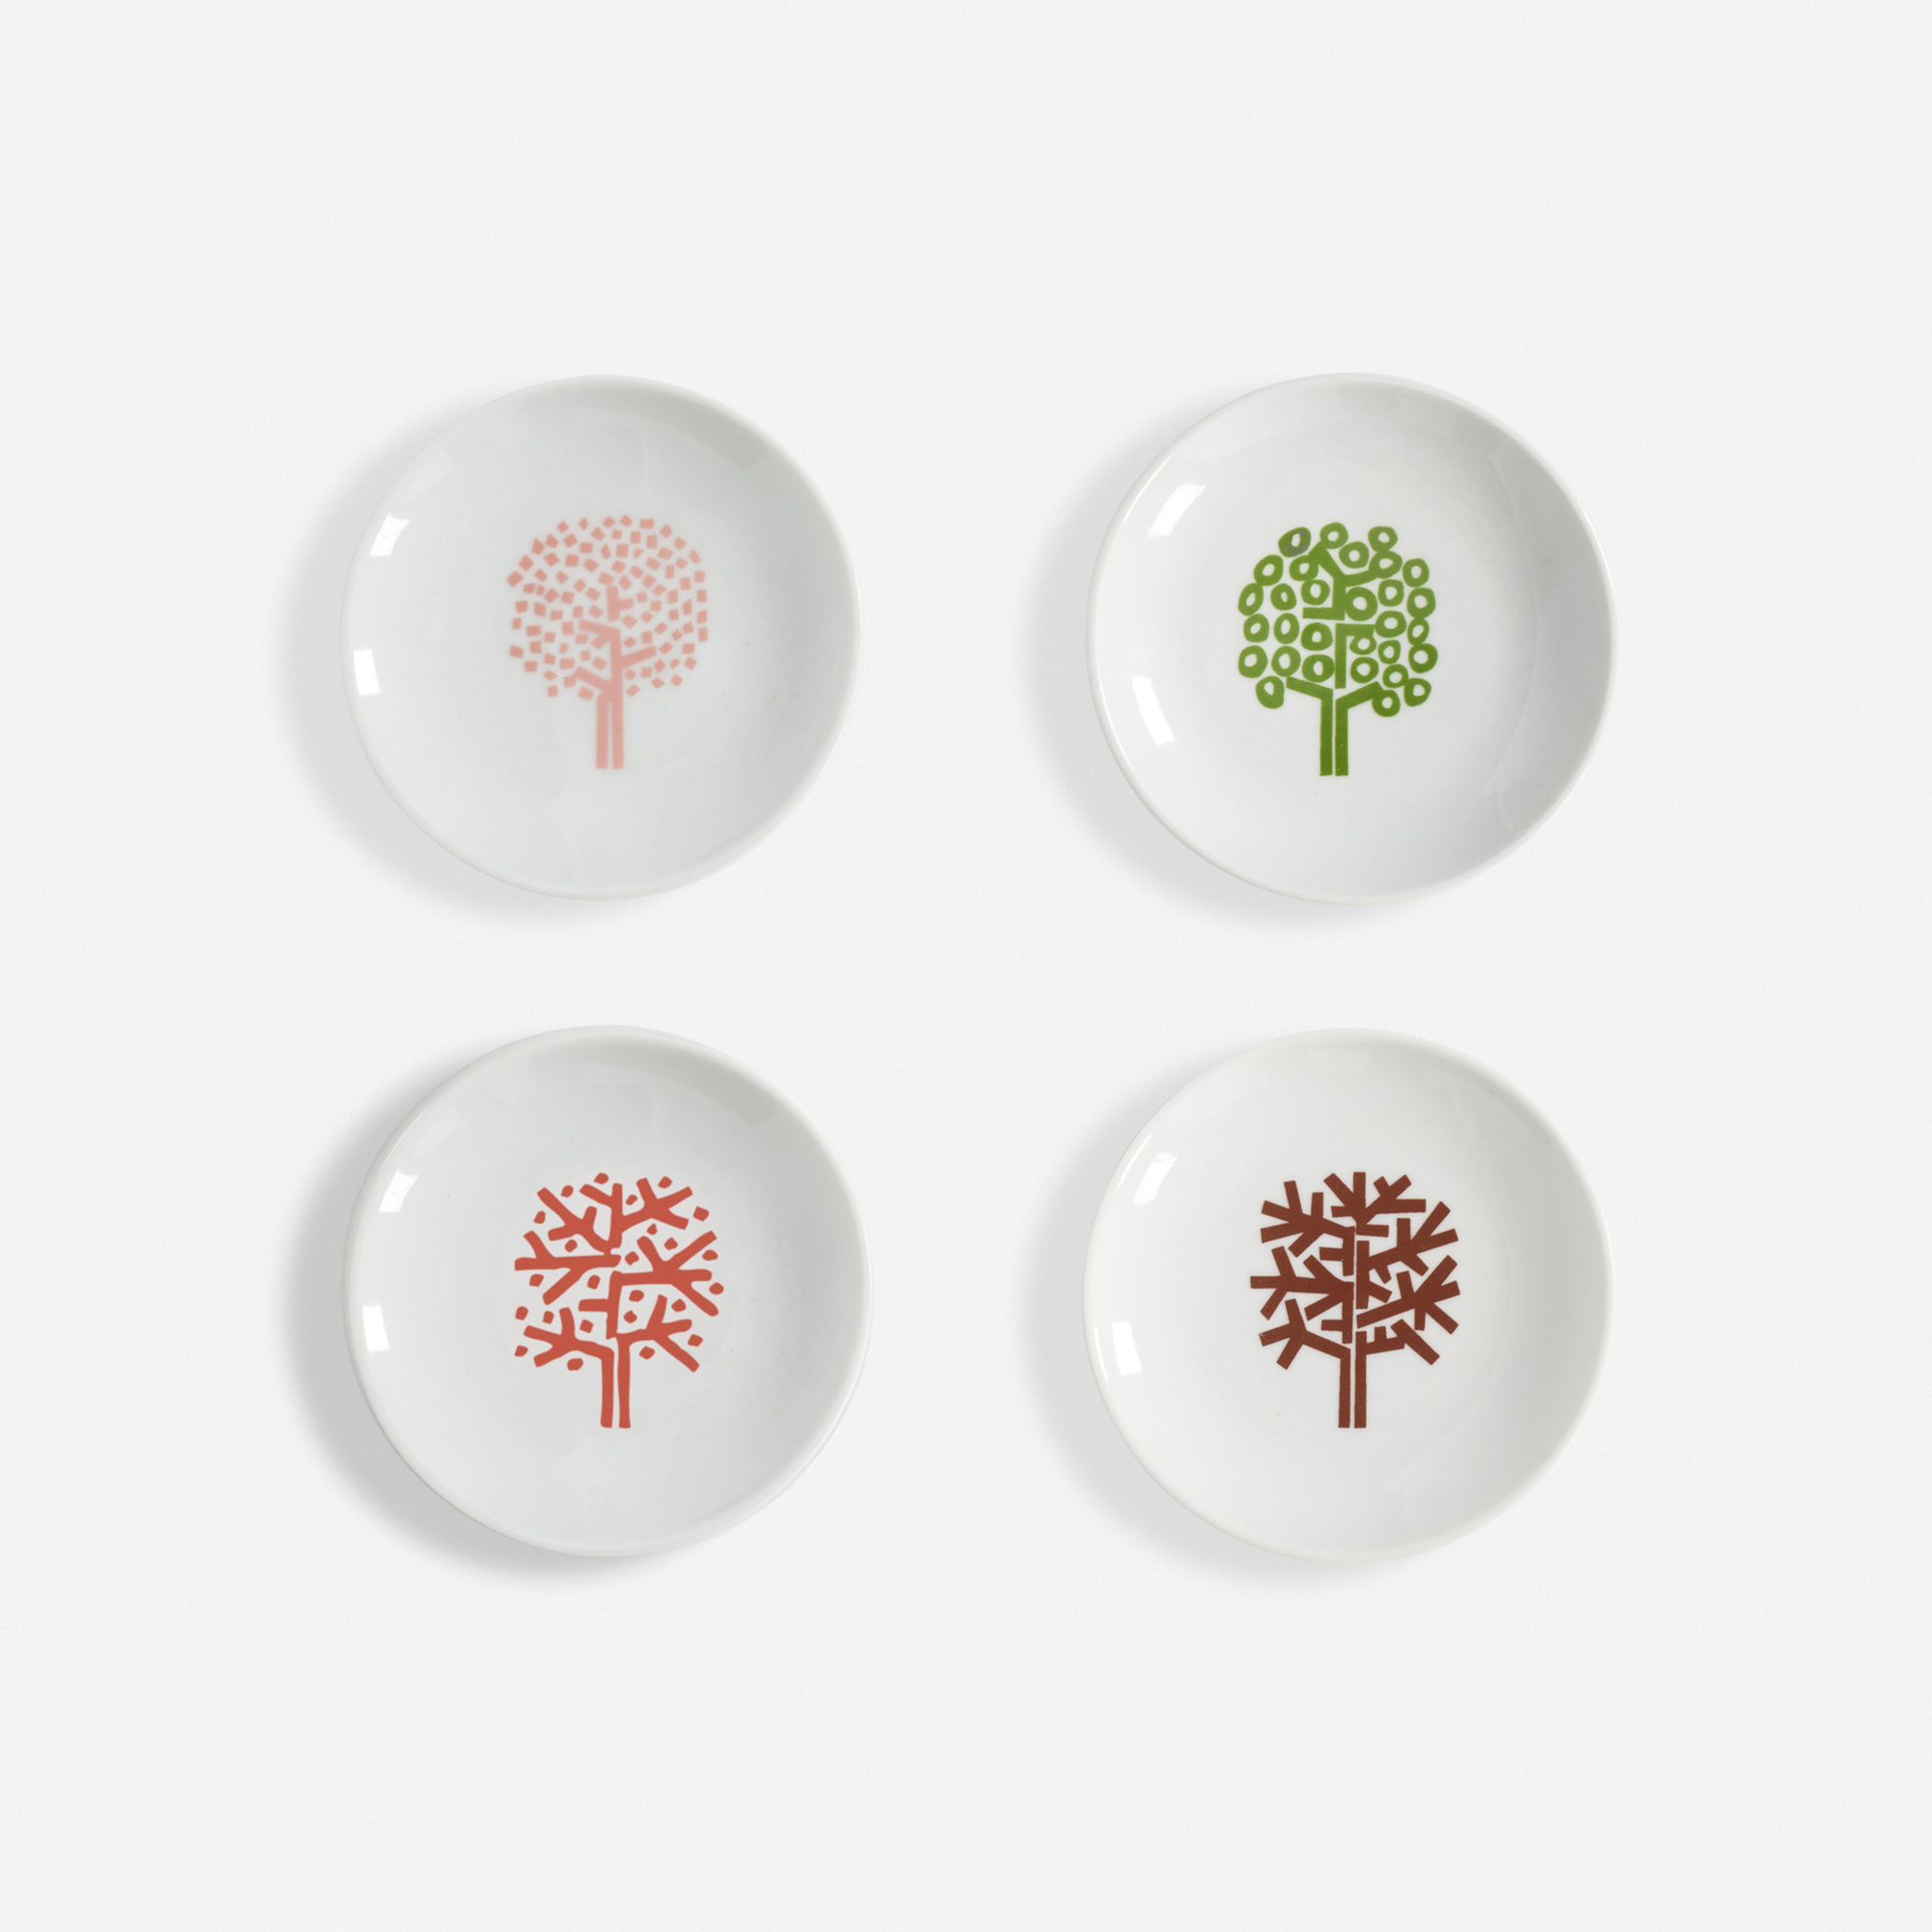 356:  / Four Seasons ashtrays, set of four (1 of 1)